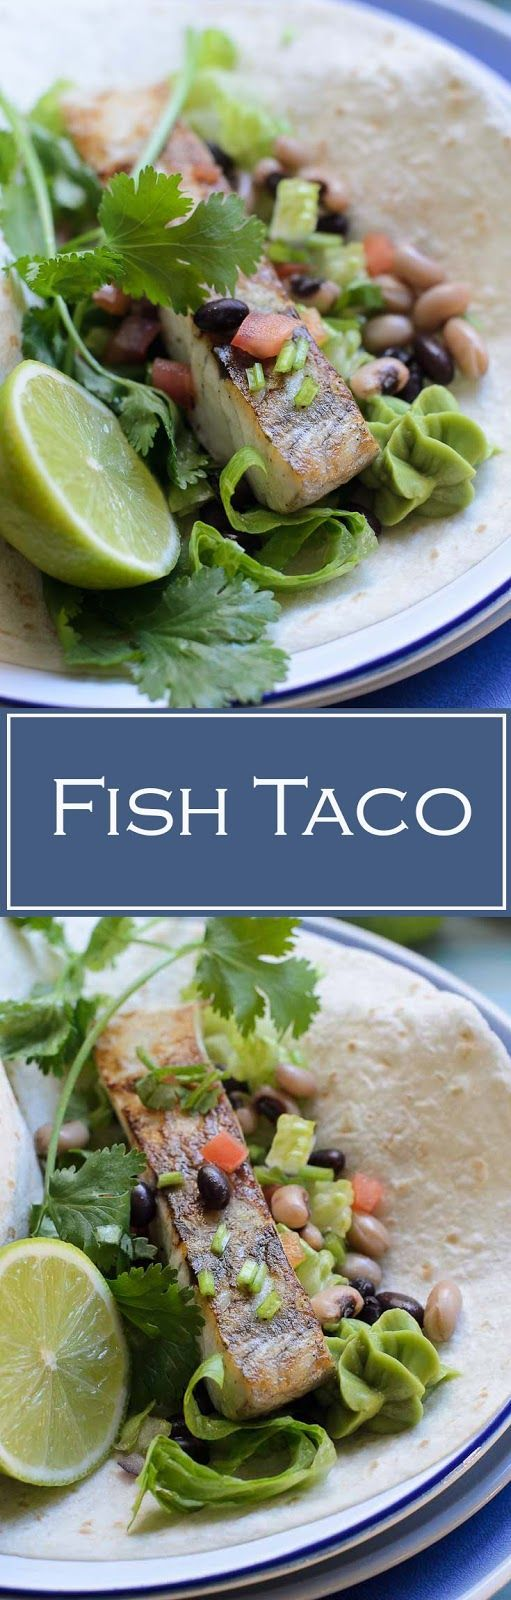 Easy and delicious Fish Taco recipe. Fish makes a healthy option for taco filling. Fish Taco, a great summer meal, originate from Baja Peninsula. Fish taco is serve on warm flour tortillas with mixed beans salsa